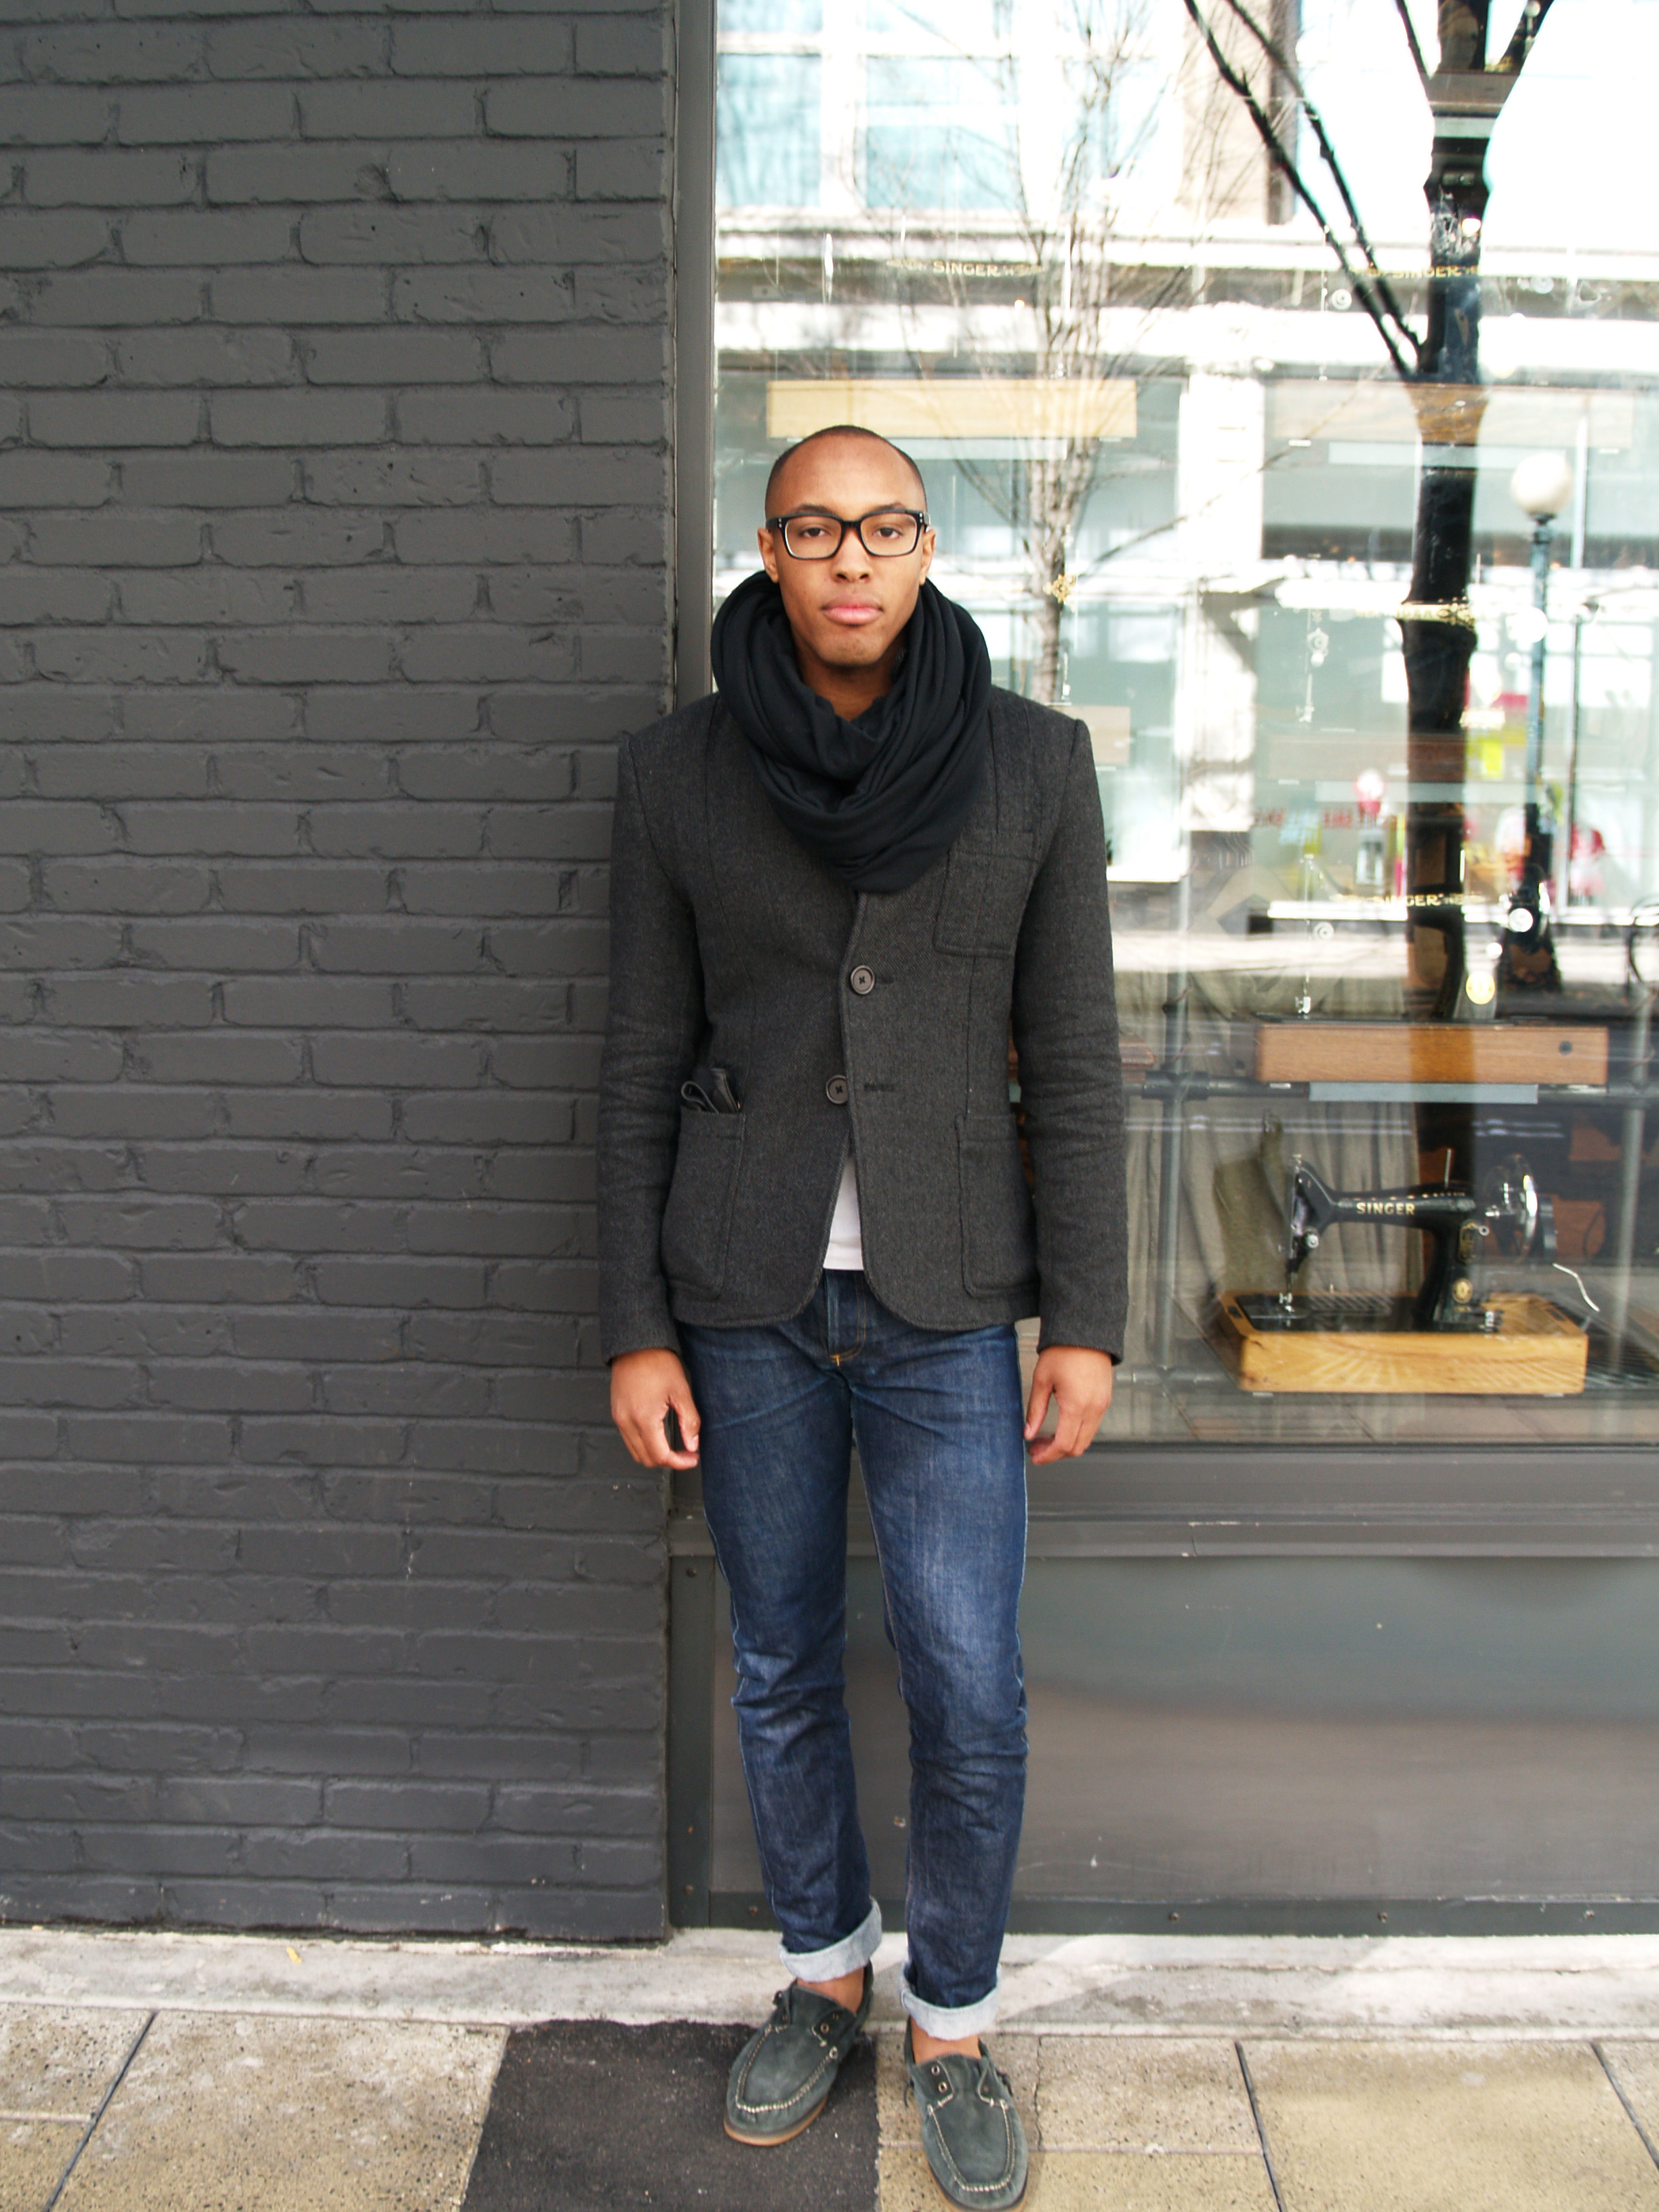 Men 39 S Downtown Street Style The Emerald Palate